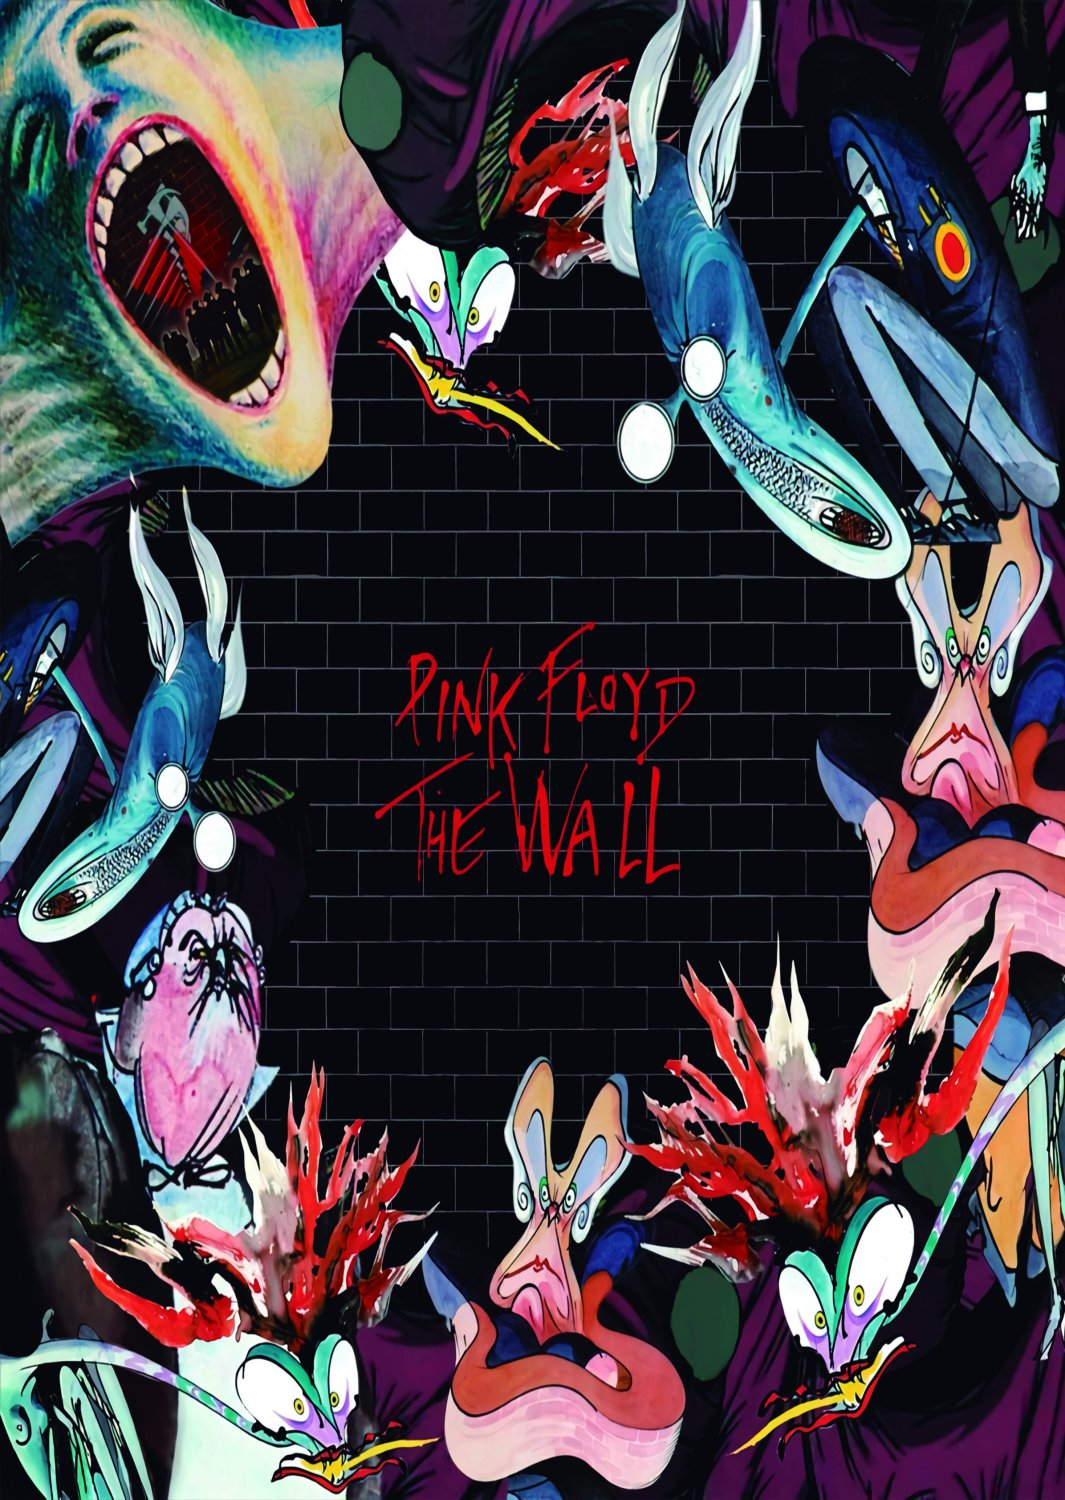 PINK FLOYD The Wall - Cartoons FLAG POSTER TAPESTRY BANNER CD Progressive Rock